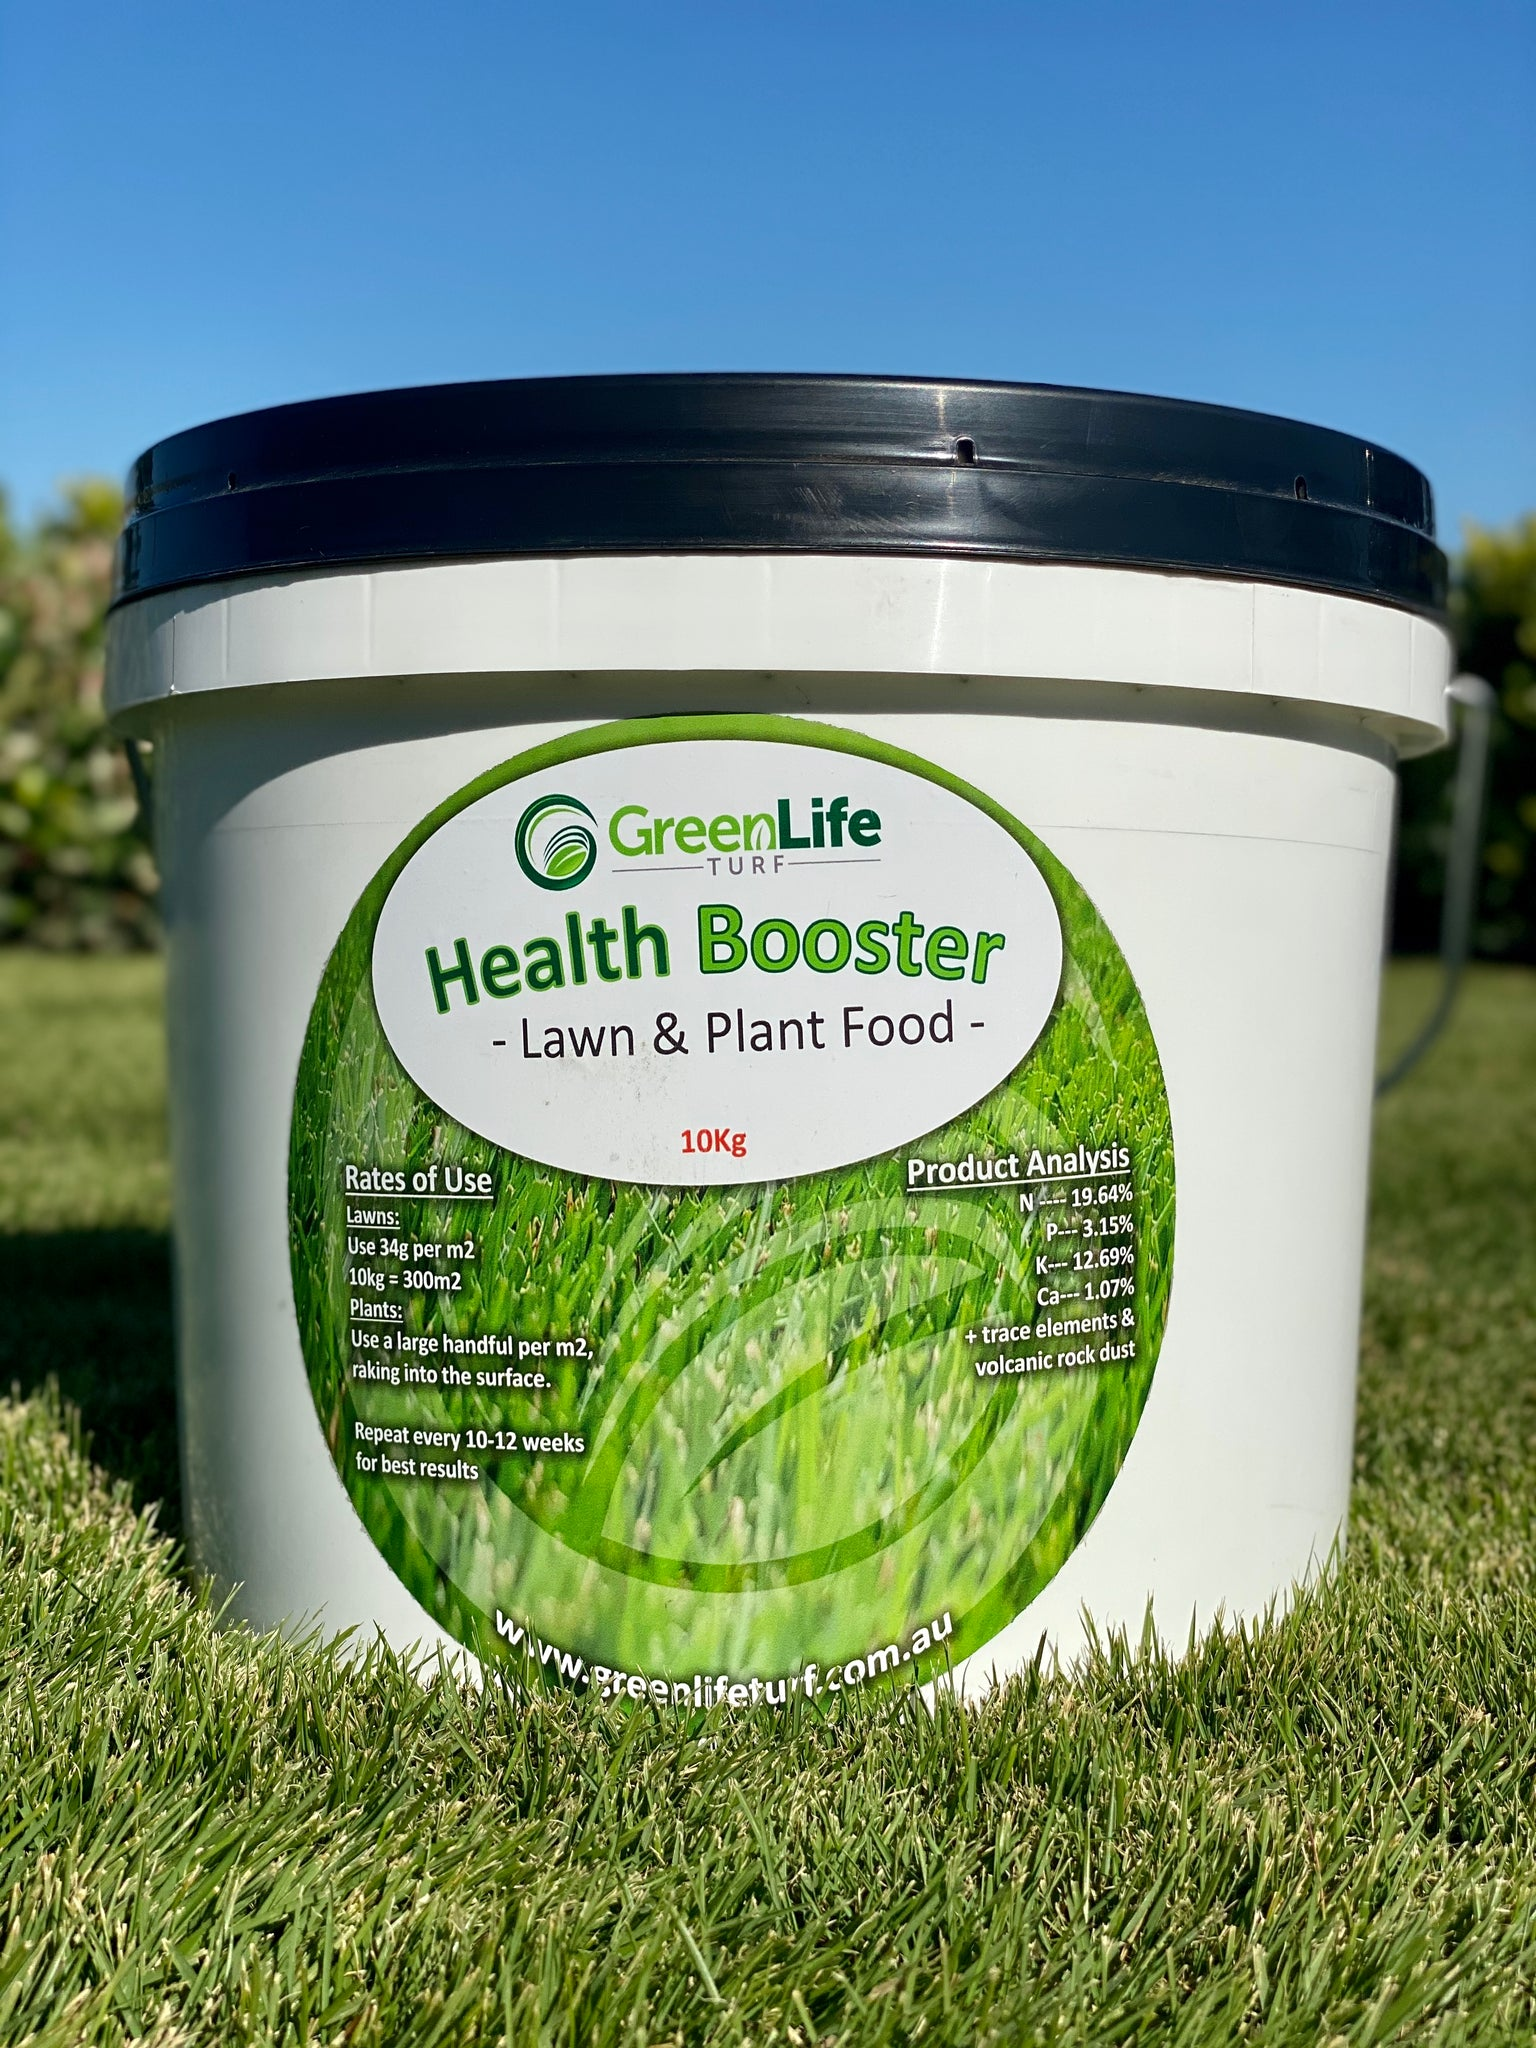 Health Booster Lawn & Plant Food Fertiliser - 10kg